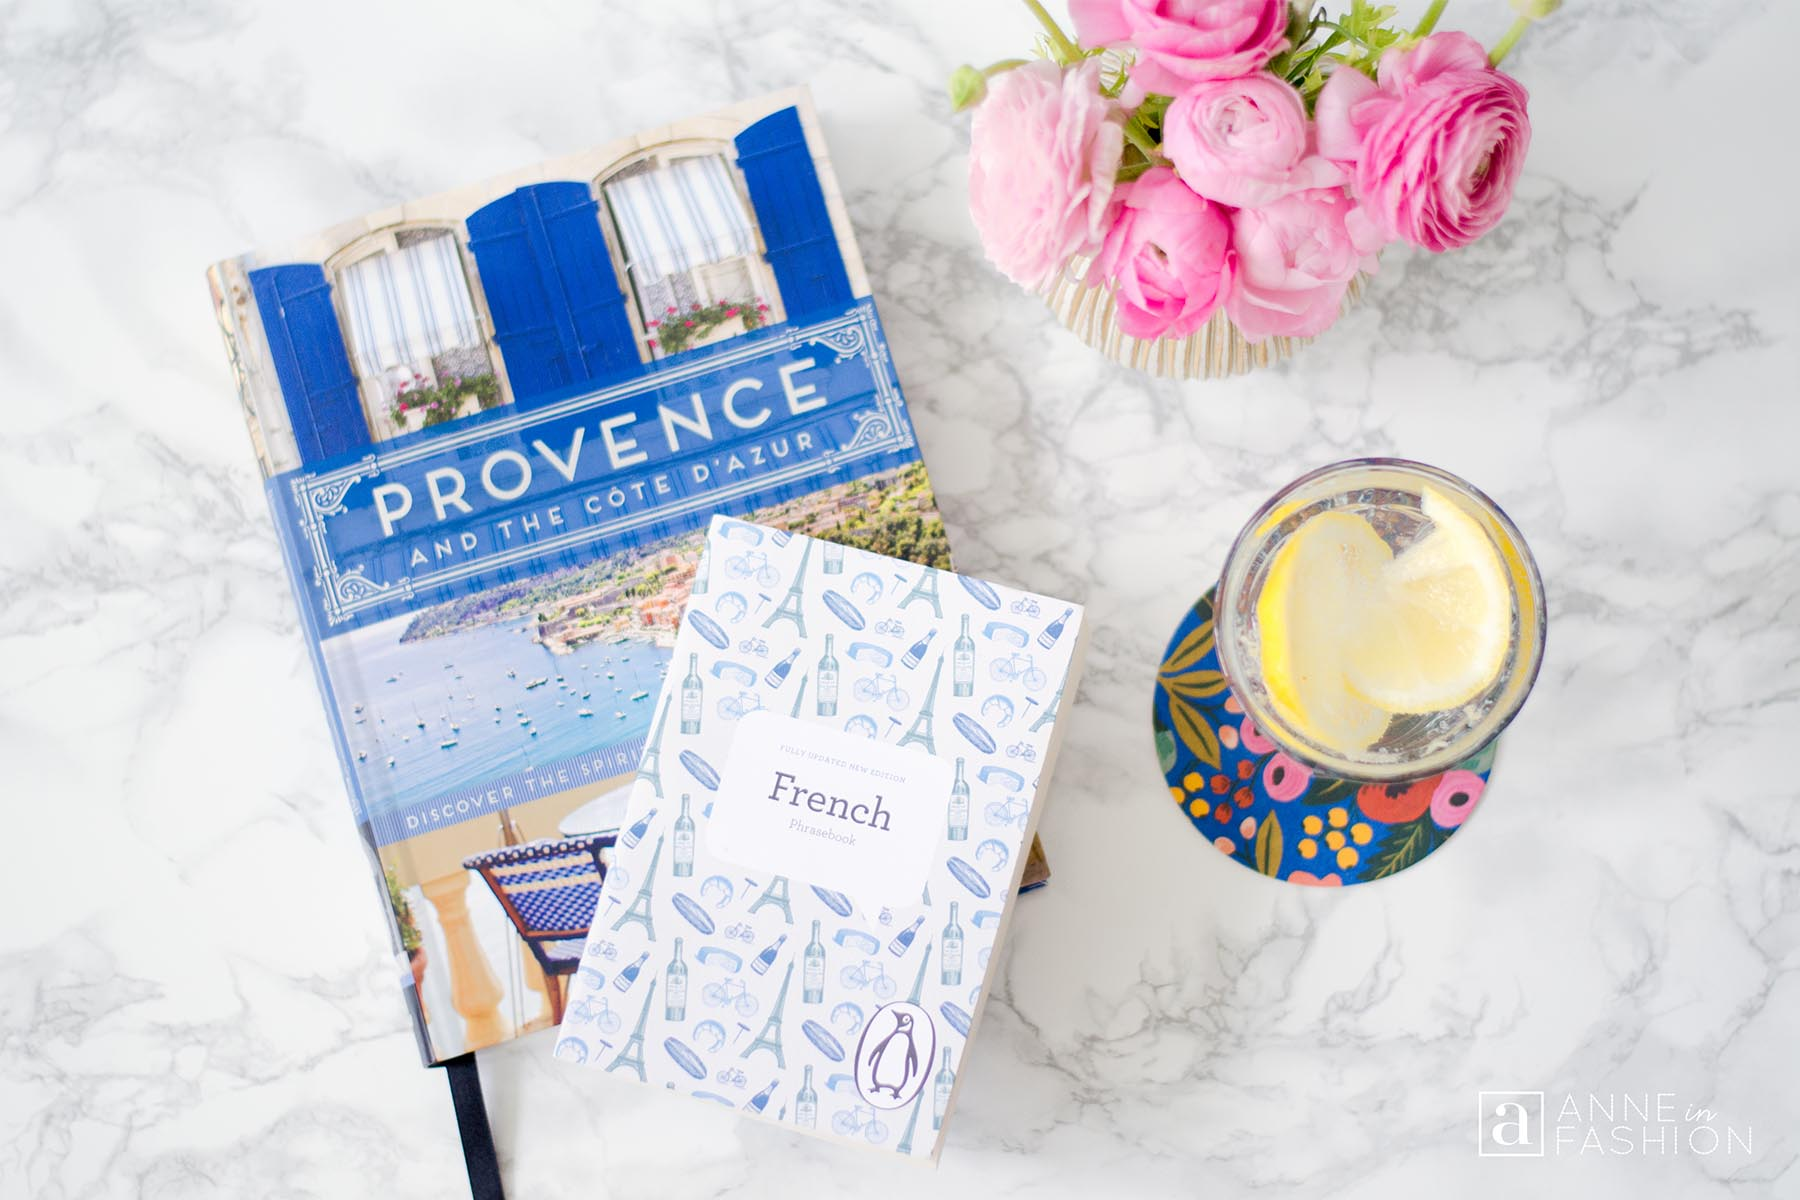 Provence and the Côte d'Azur book by Janelle McCulloch with French Phrasebook